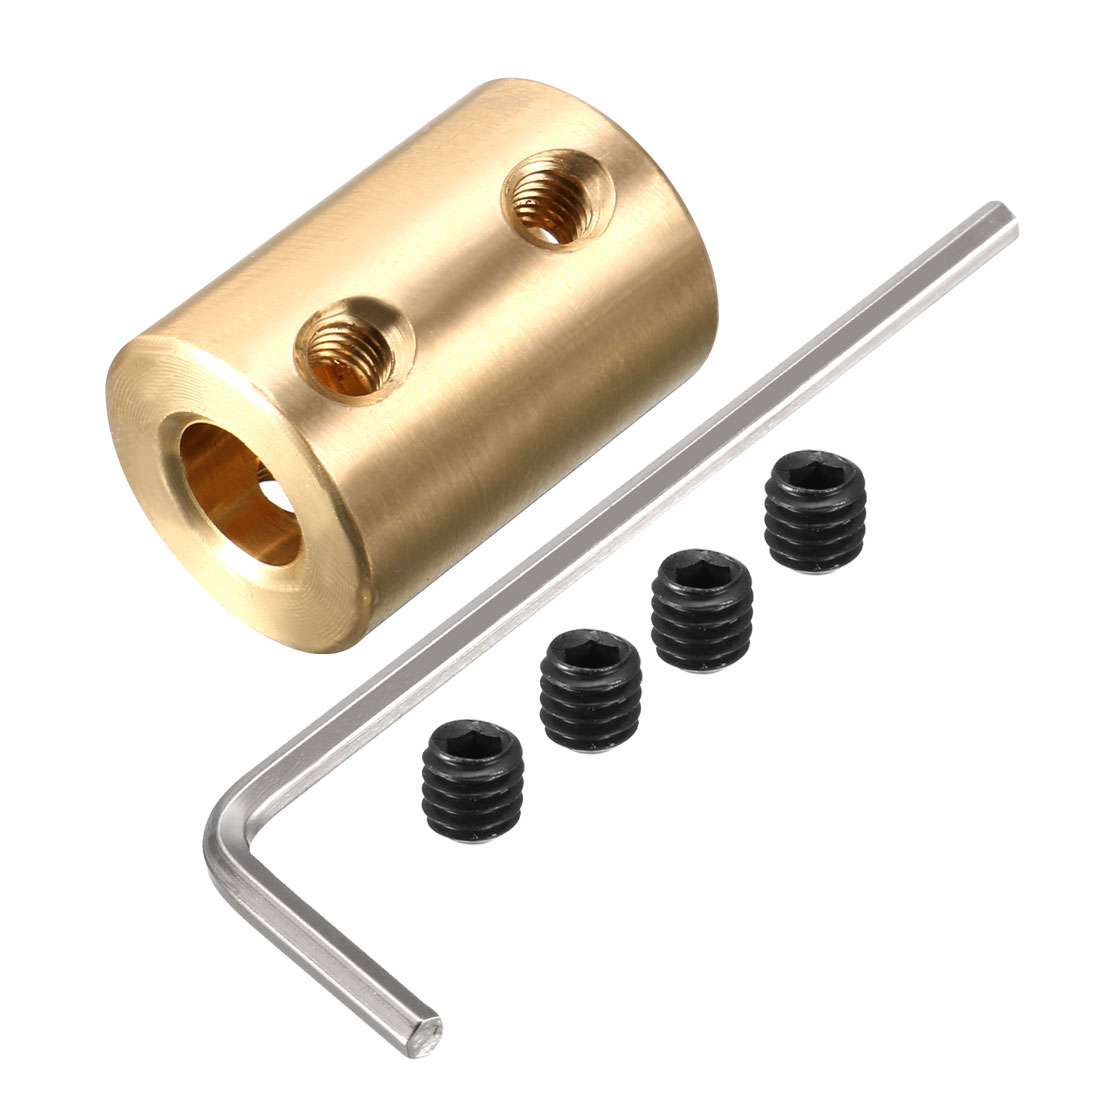 5mm to 7mm Aluminium Alloy Brass Motor Shaft Coupling Joint Connector